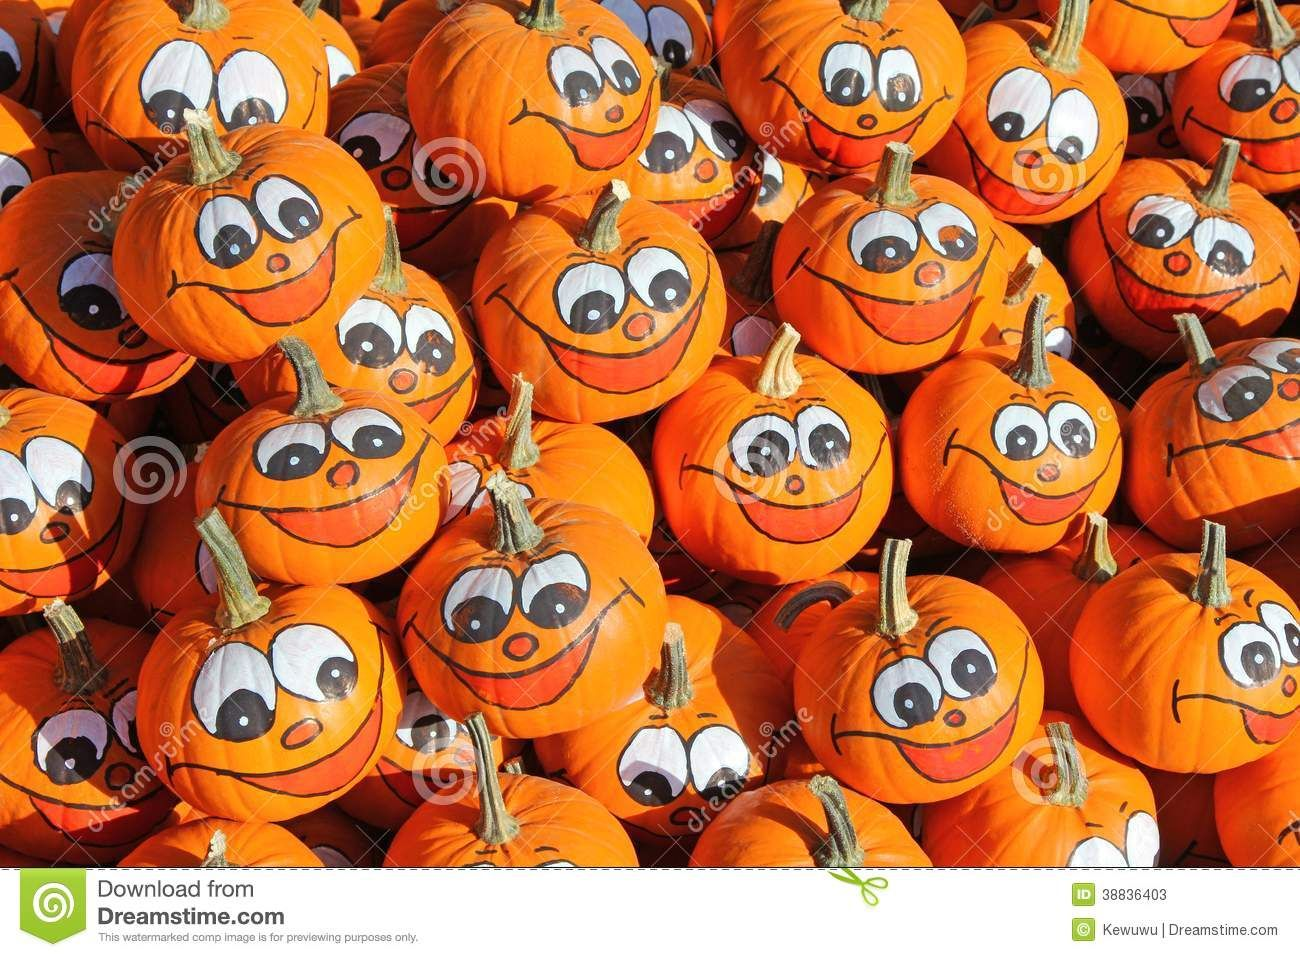 Smiley face painting wet paint clipart svg library download Smiley Faces Painted On Fresh Pumpkins Stock Photo - Image ... svg library download